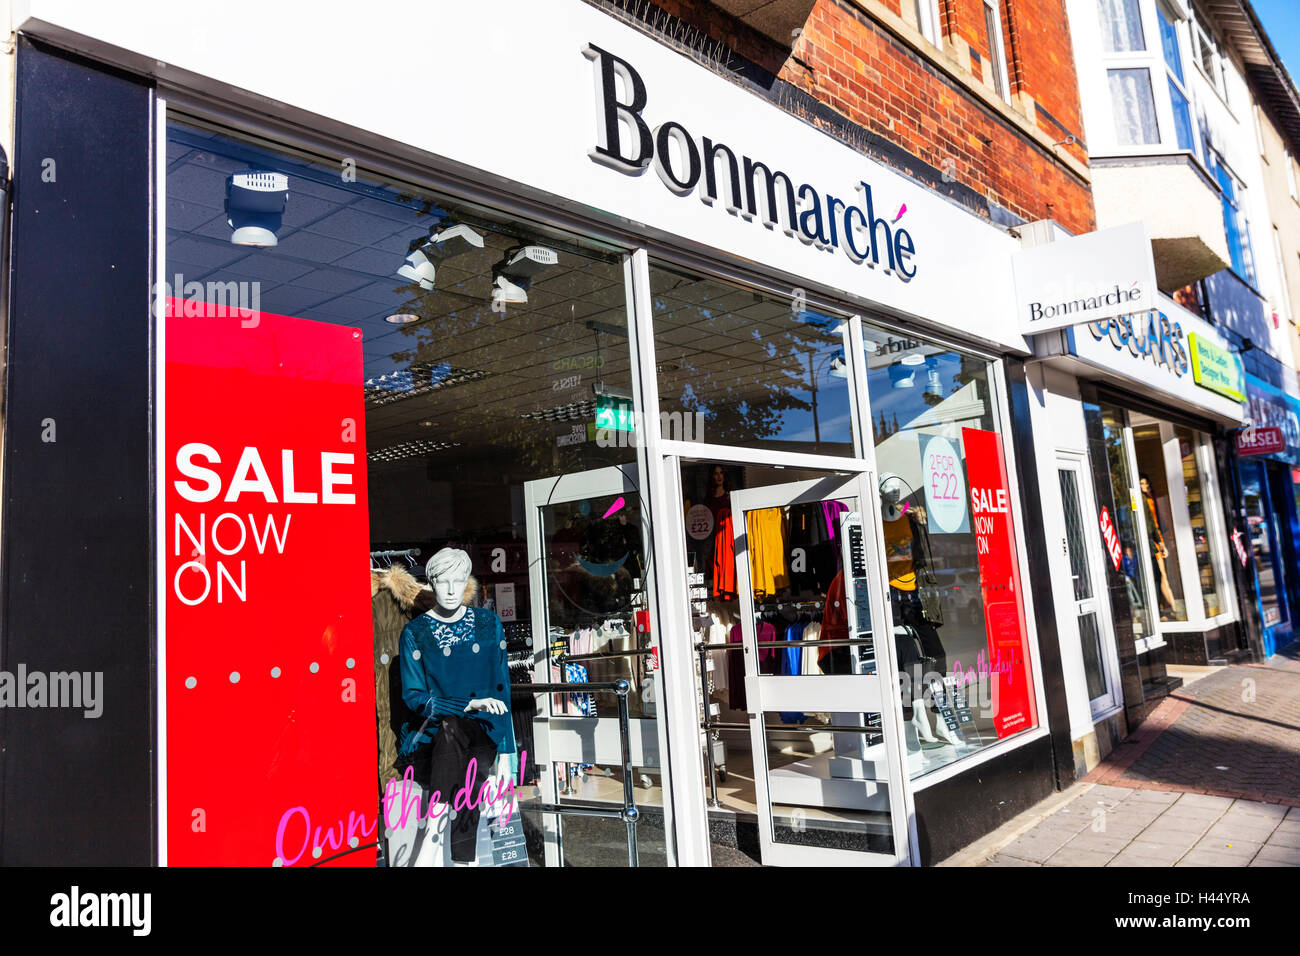 Bonmarche fashion chain store shop shops sign store storefront street UK England GB - Stock Image